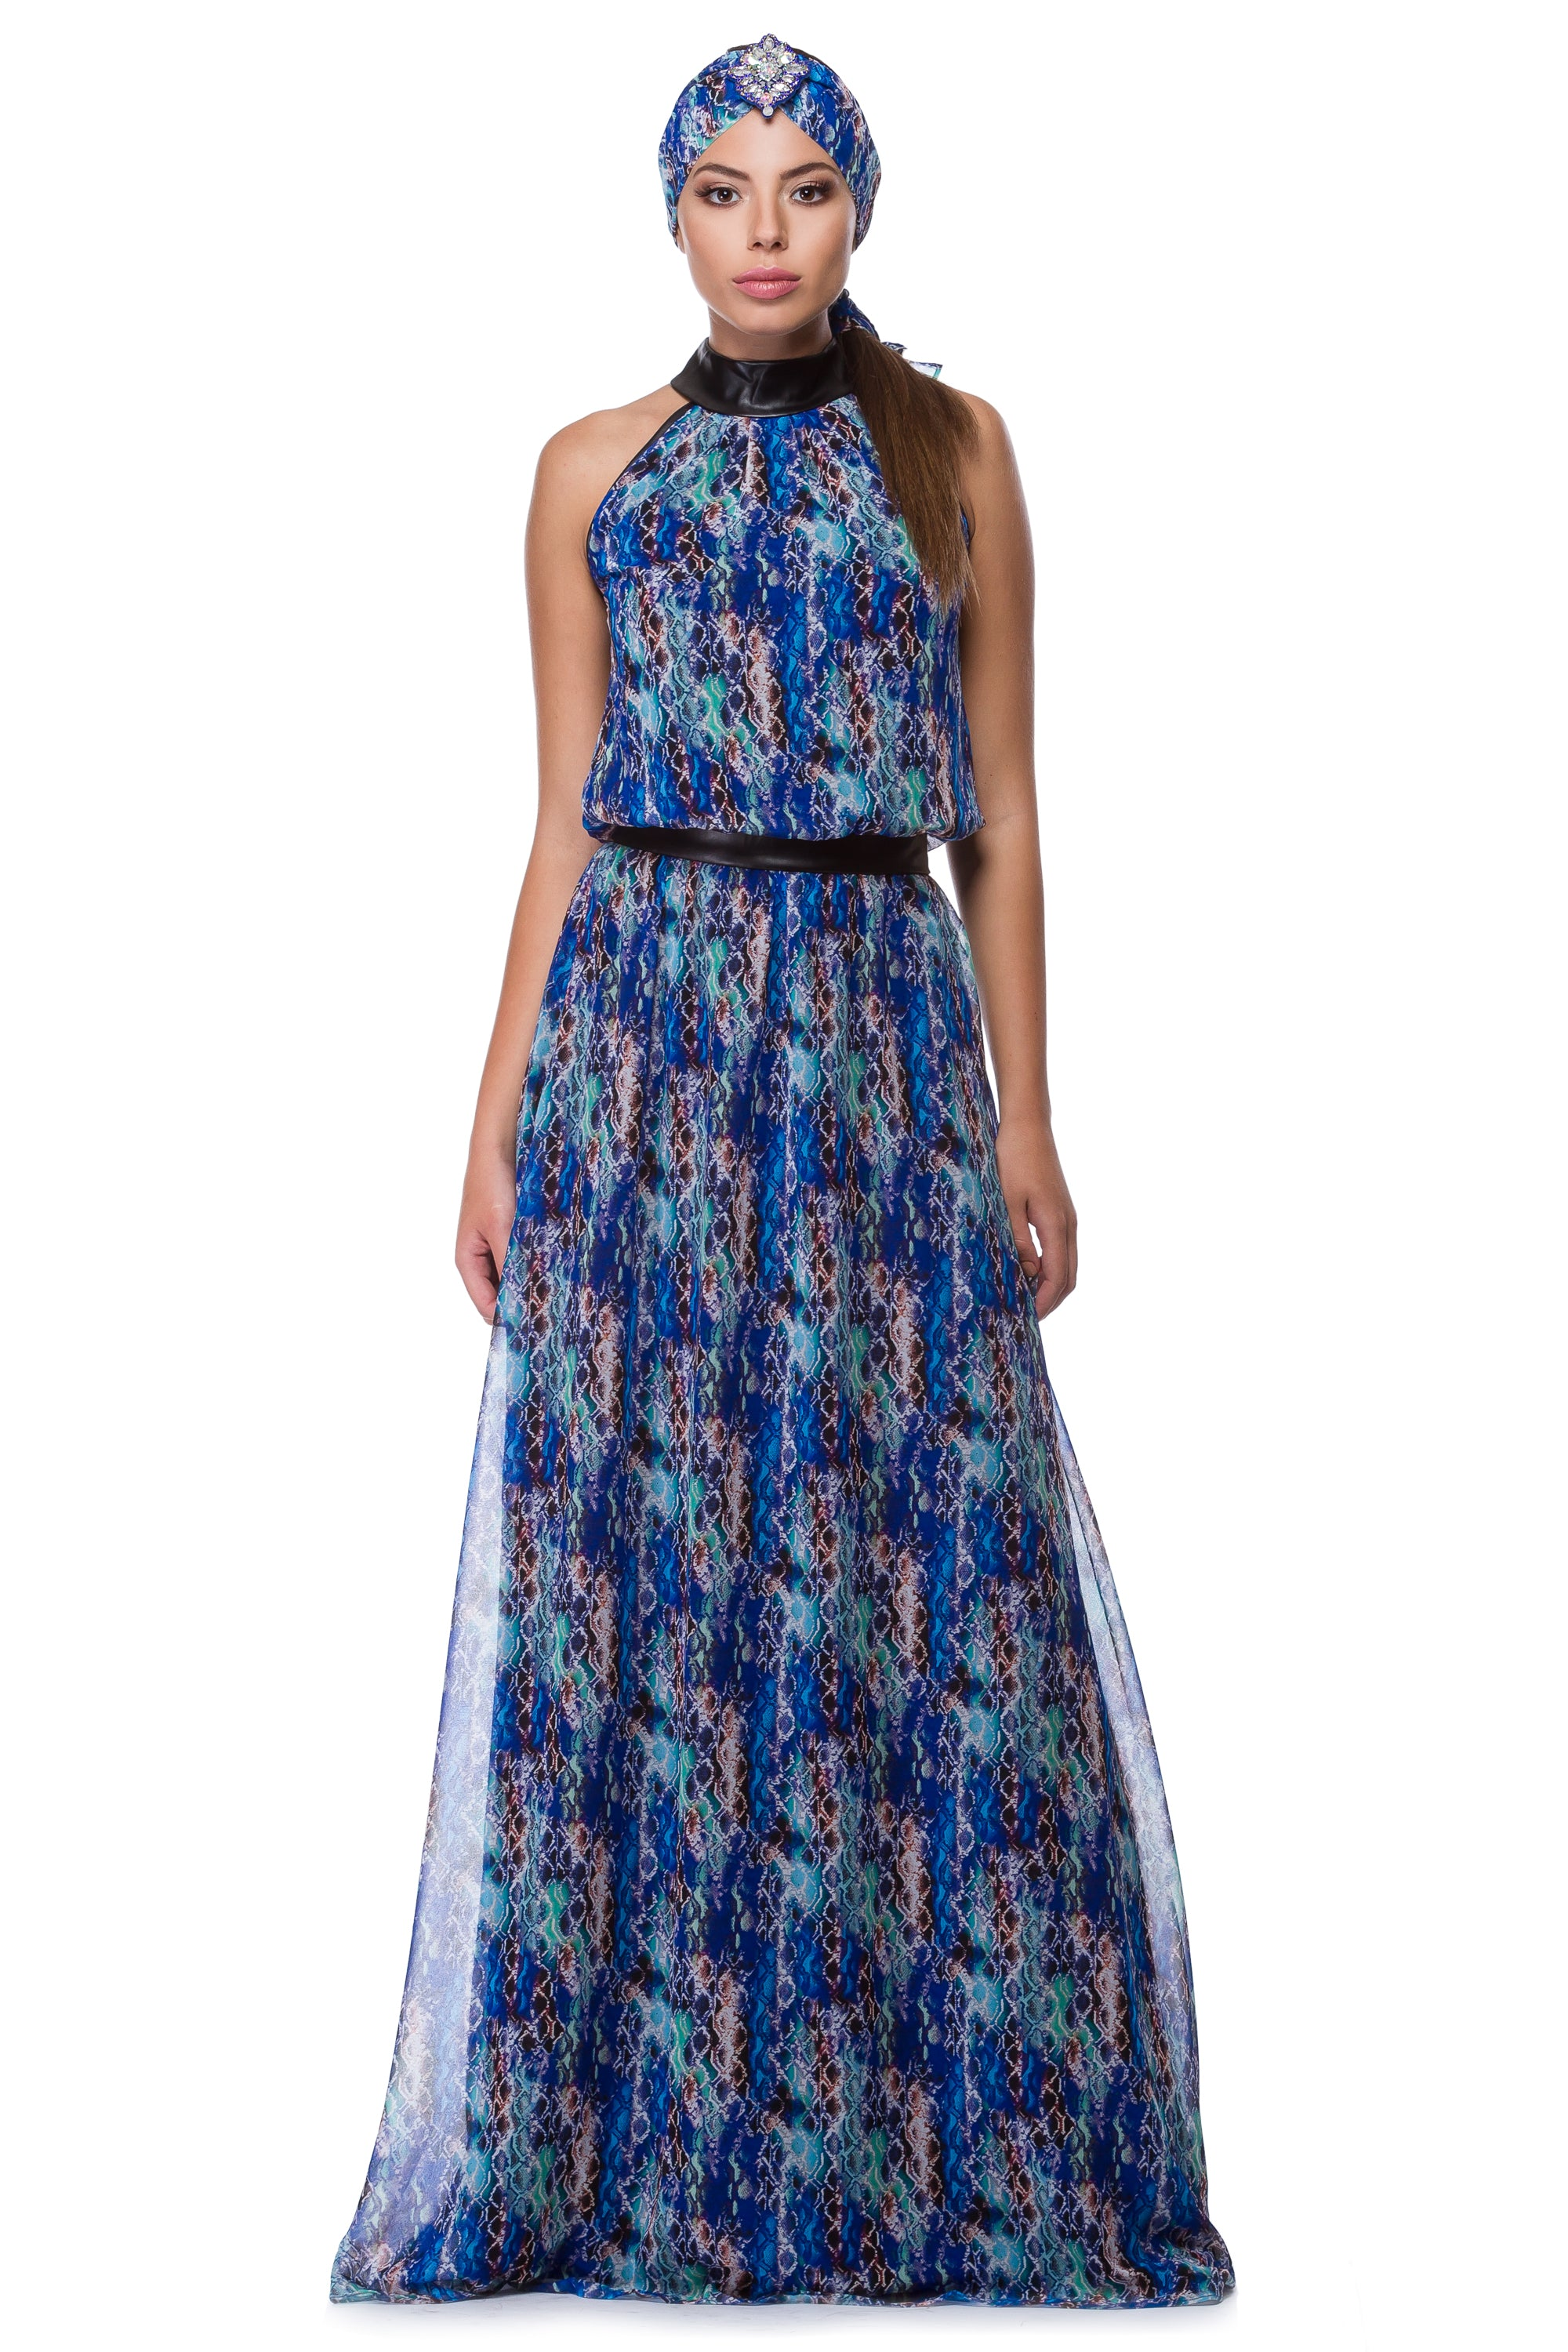 Blue chiffon dress with snake print WDR-0006